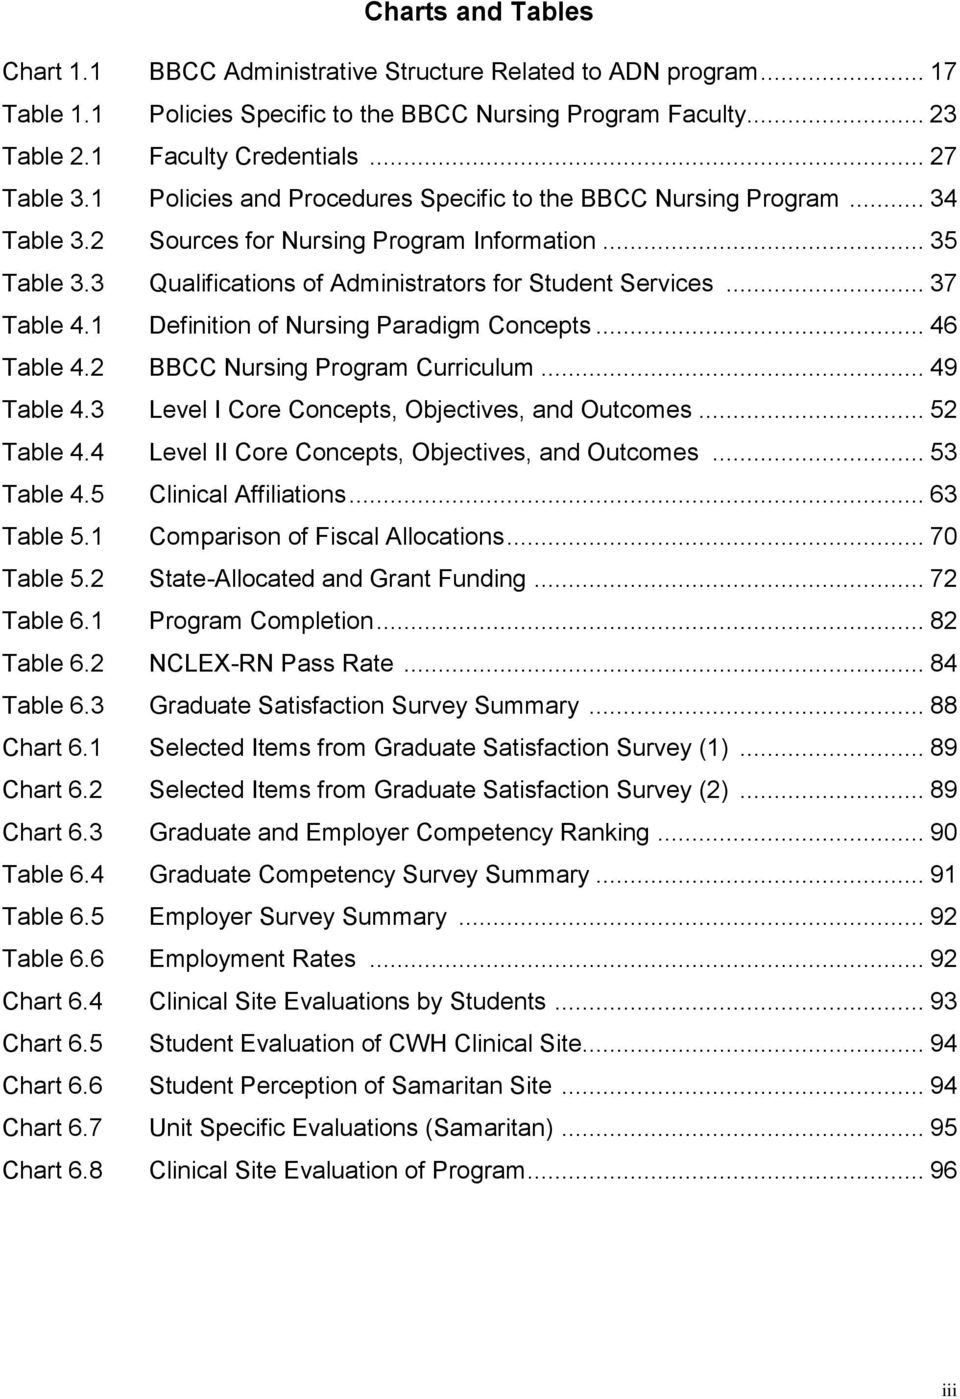 .. 37 Table 4.1 Definition of Nursing Paradigm Concepts... 46 Table 4.2 BBCC Nursing Program Curriculum... 49 Table 4.3 Level I Core Concepts, Objectives, and Outcomes... 52 Table 4.